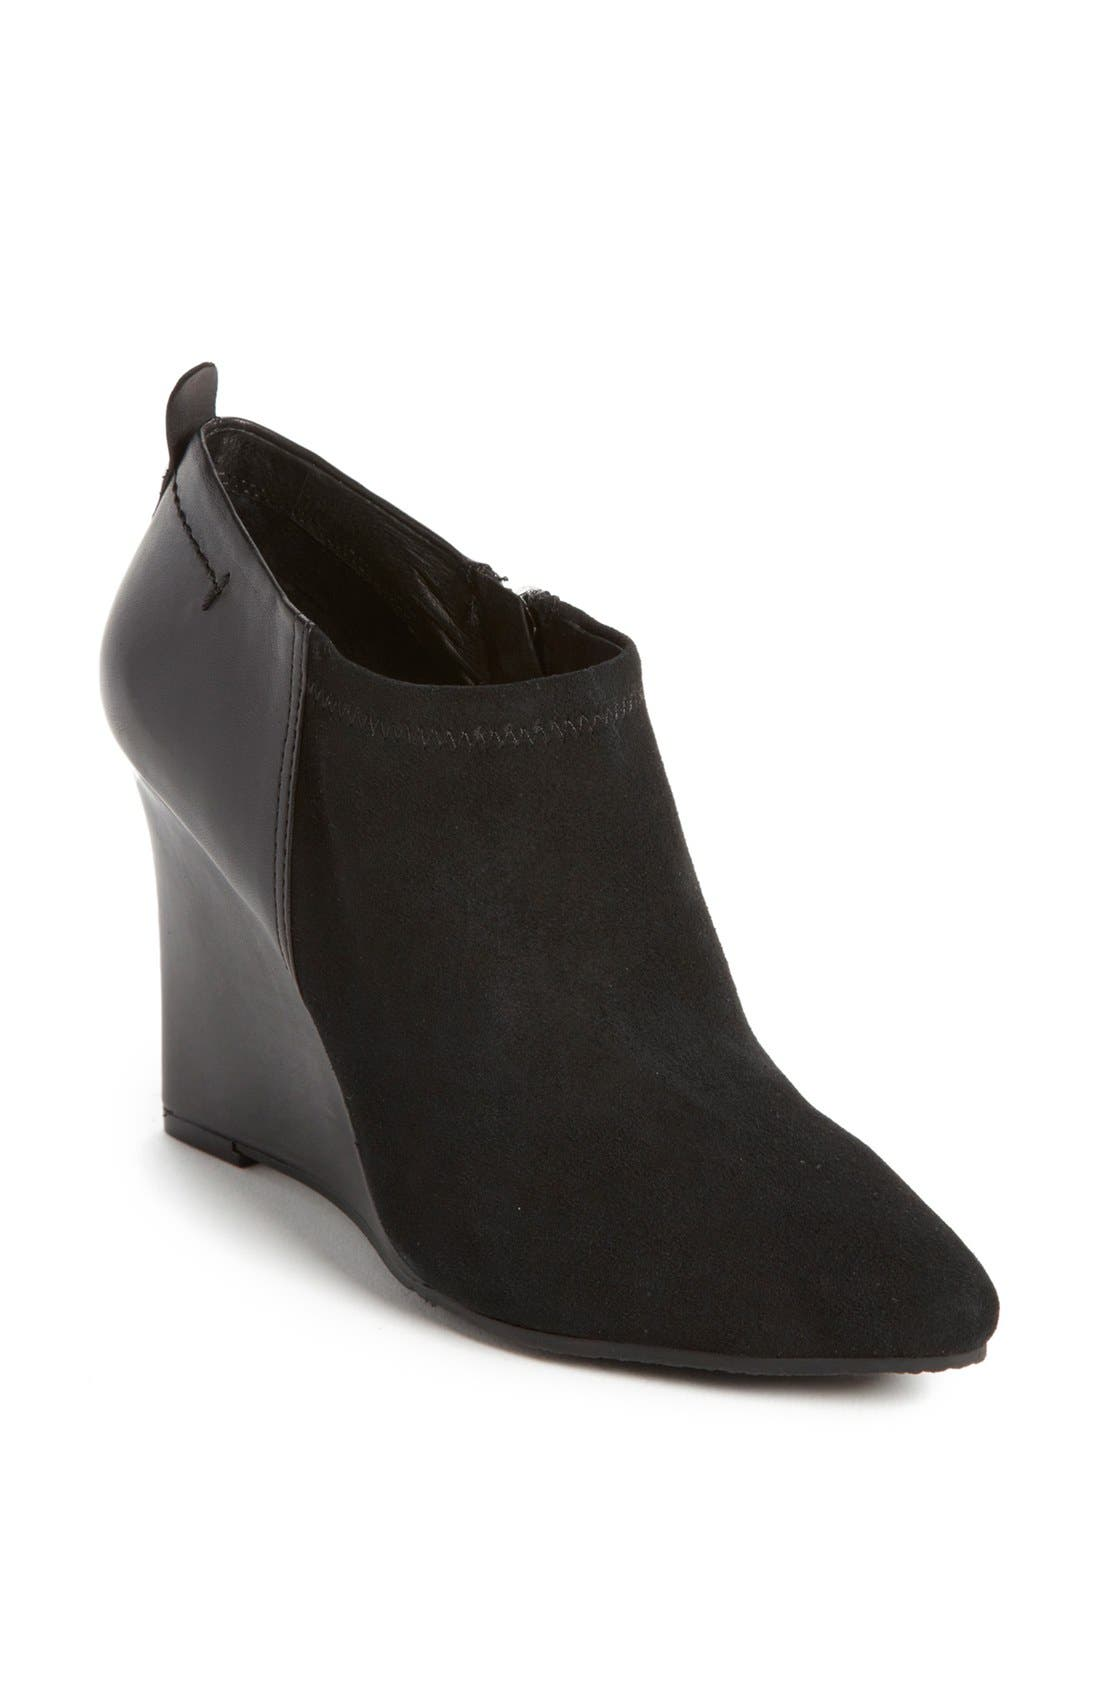 Alternate Image 1 Selected - Vince Camuto 'Kemper' Bootie (Nordstrom Exclusive)